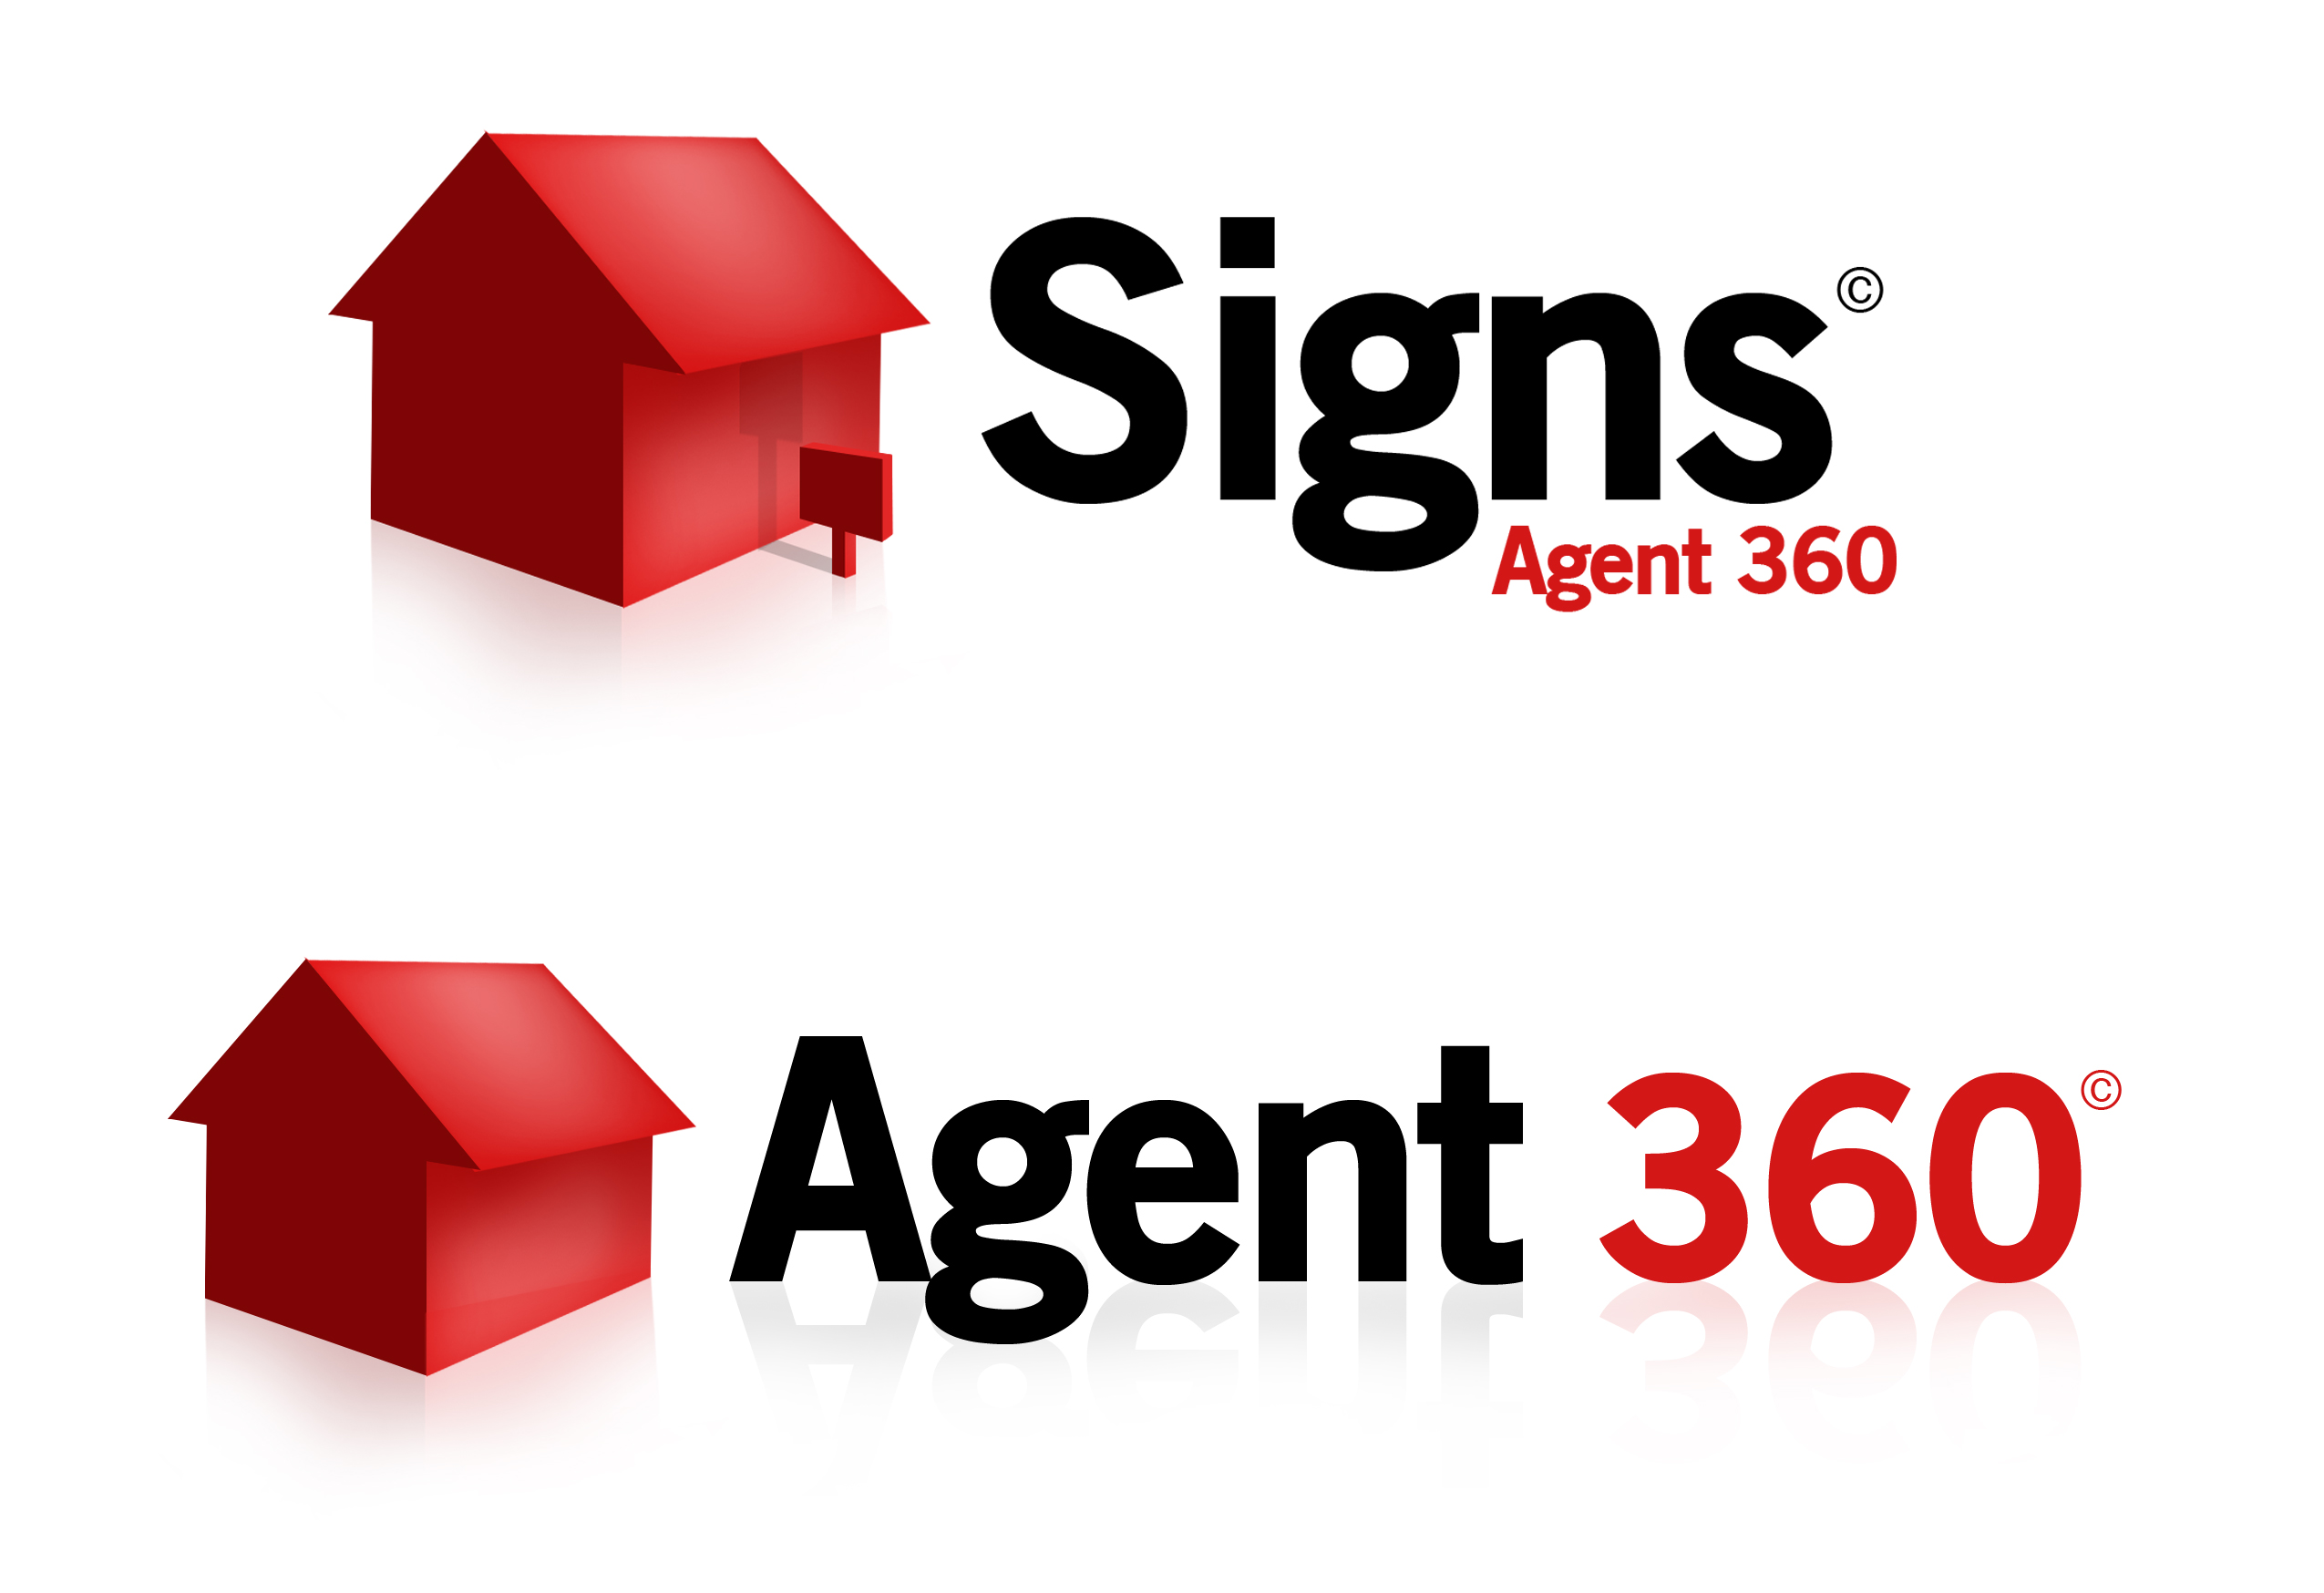 """Signs"" and ""Agent 360"" logo treatments"